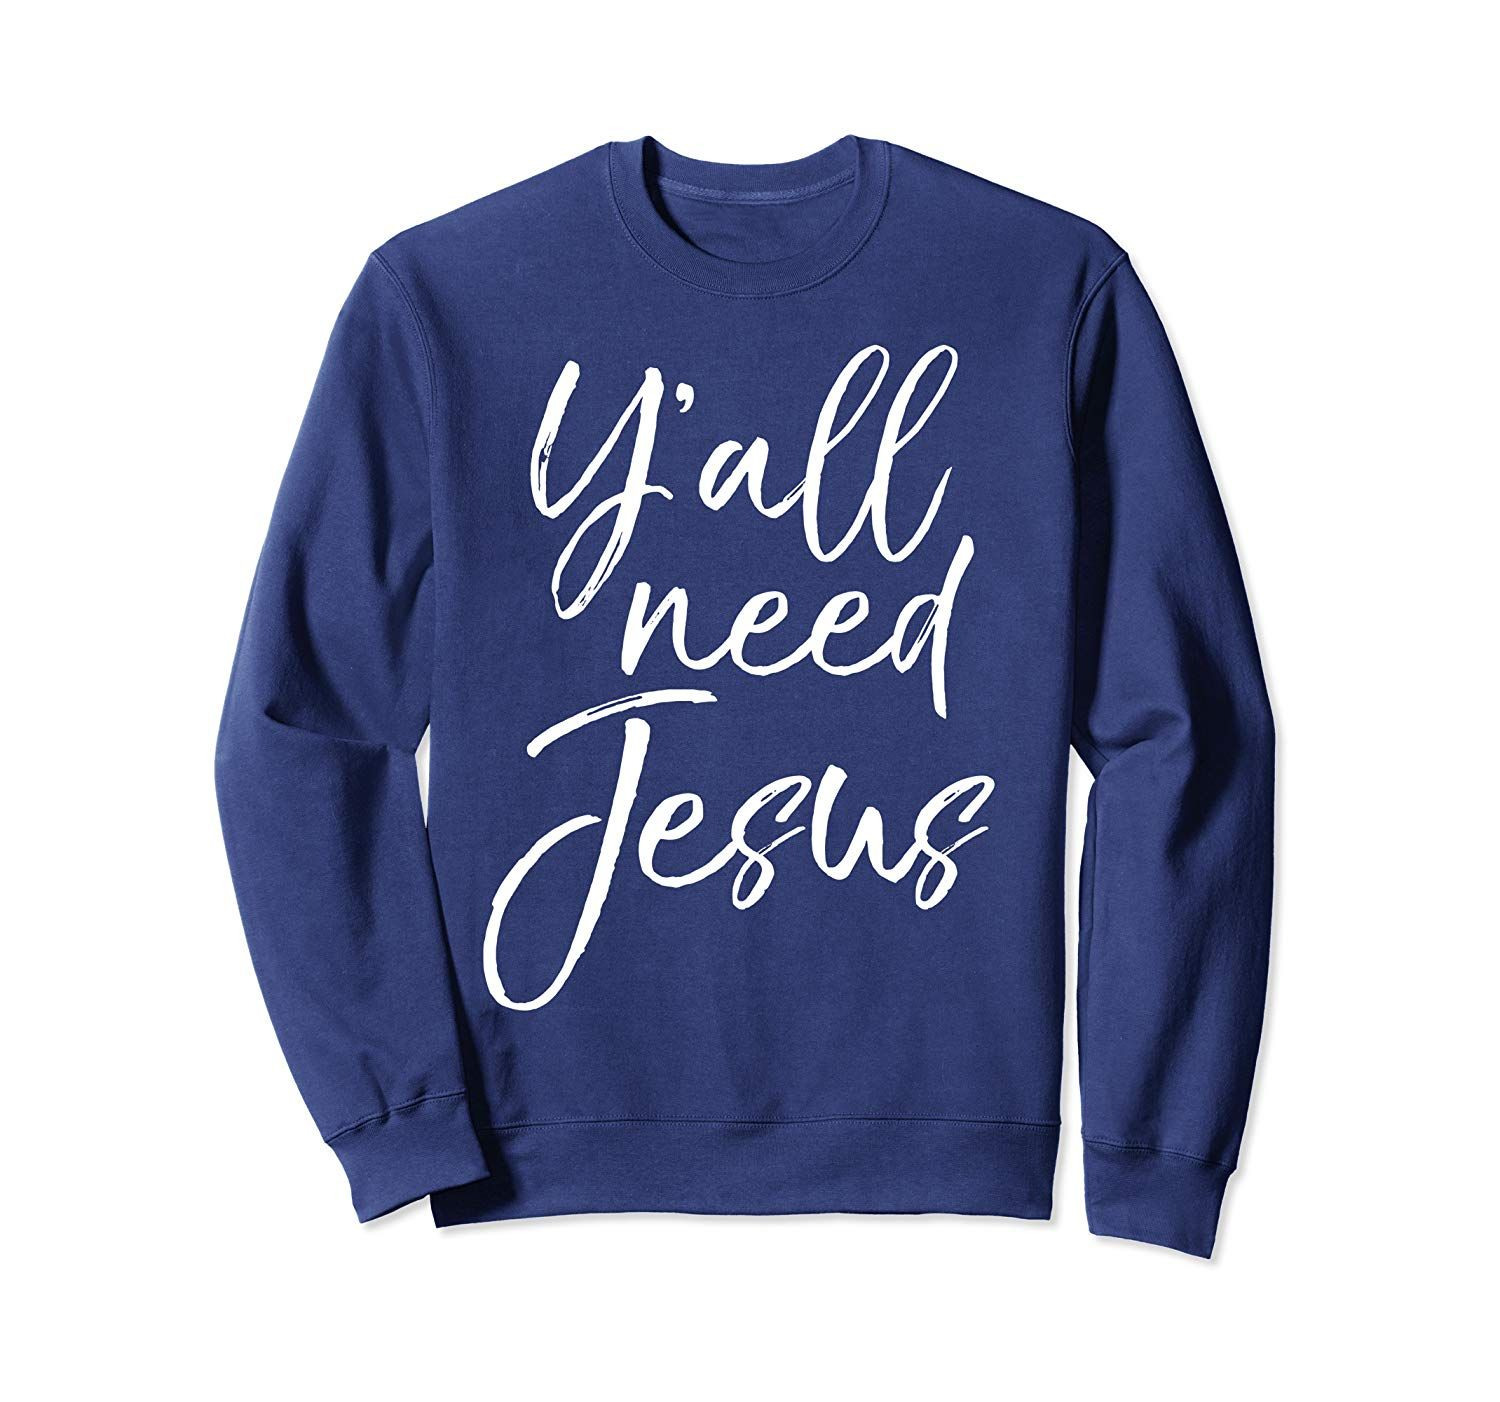 Cute Southern Christian Saying Funny Quote Y'all Need Jesus Sweatshirt #vegetarianquotes